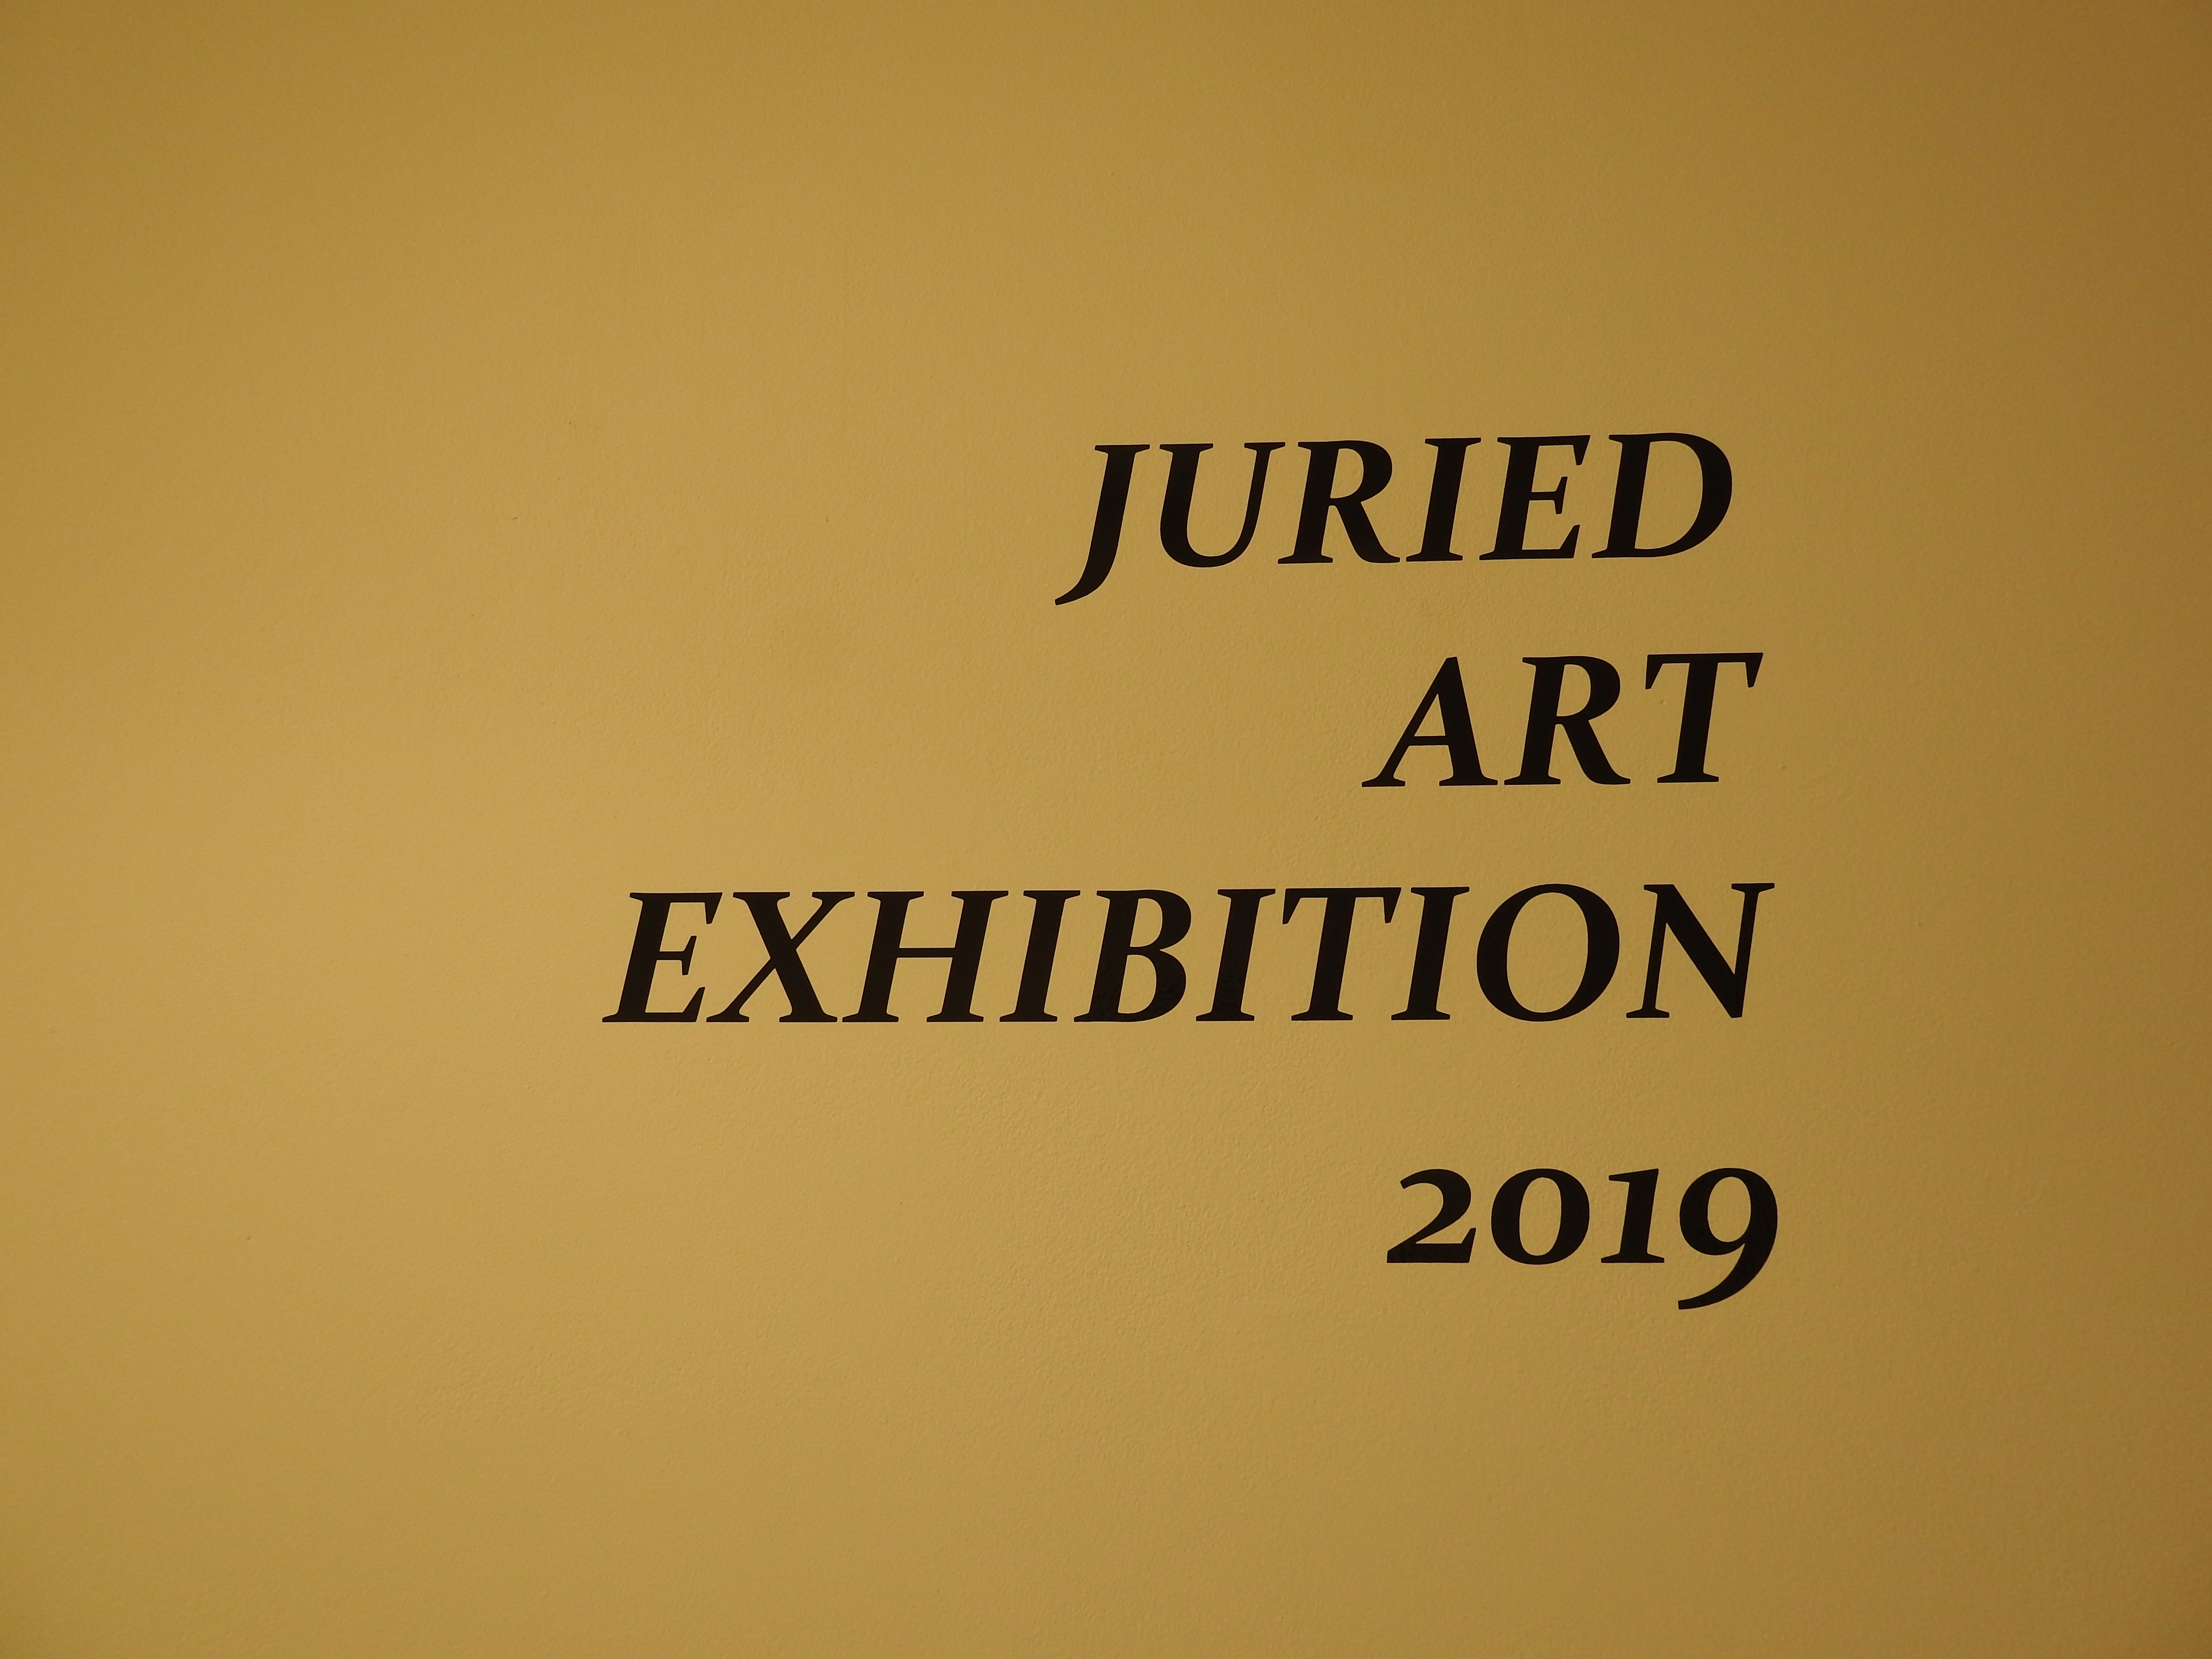 Student works showcased at annual Juried Art Exhibition